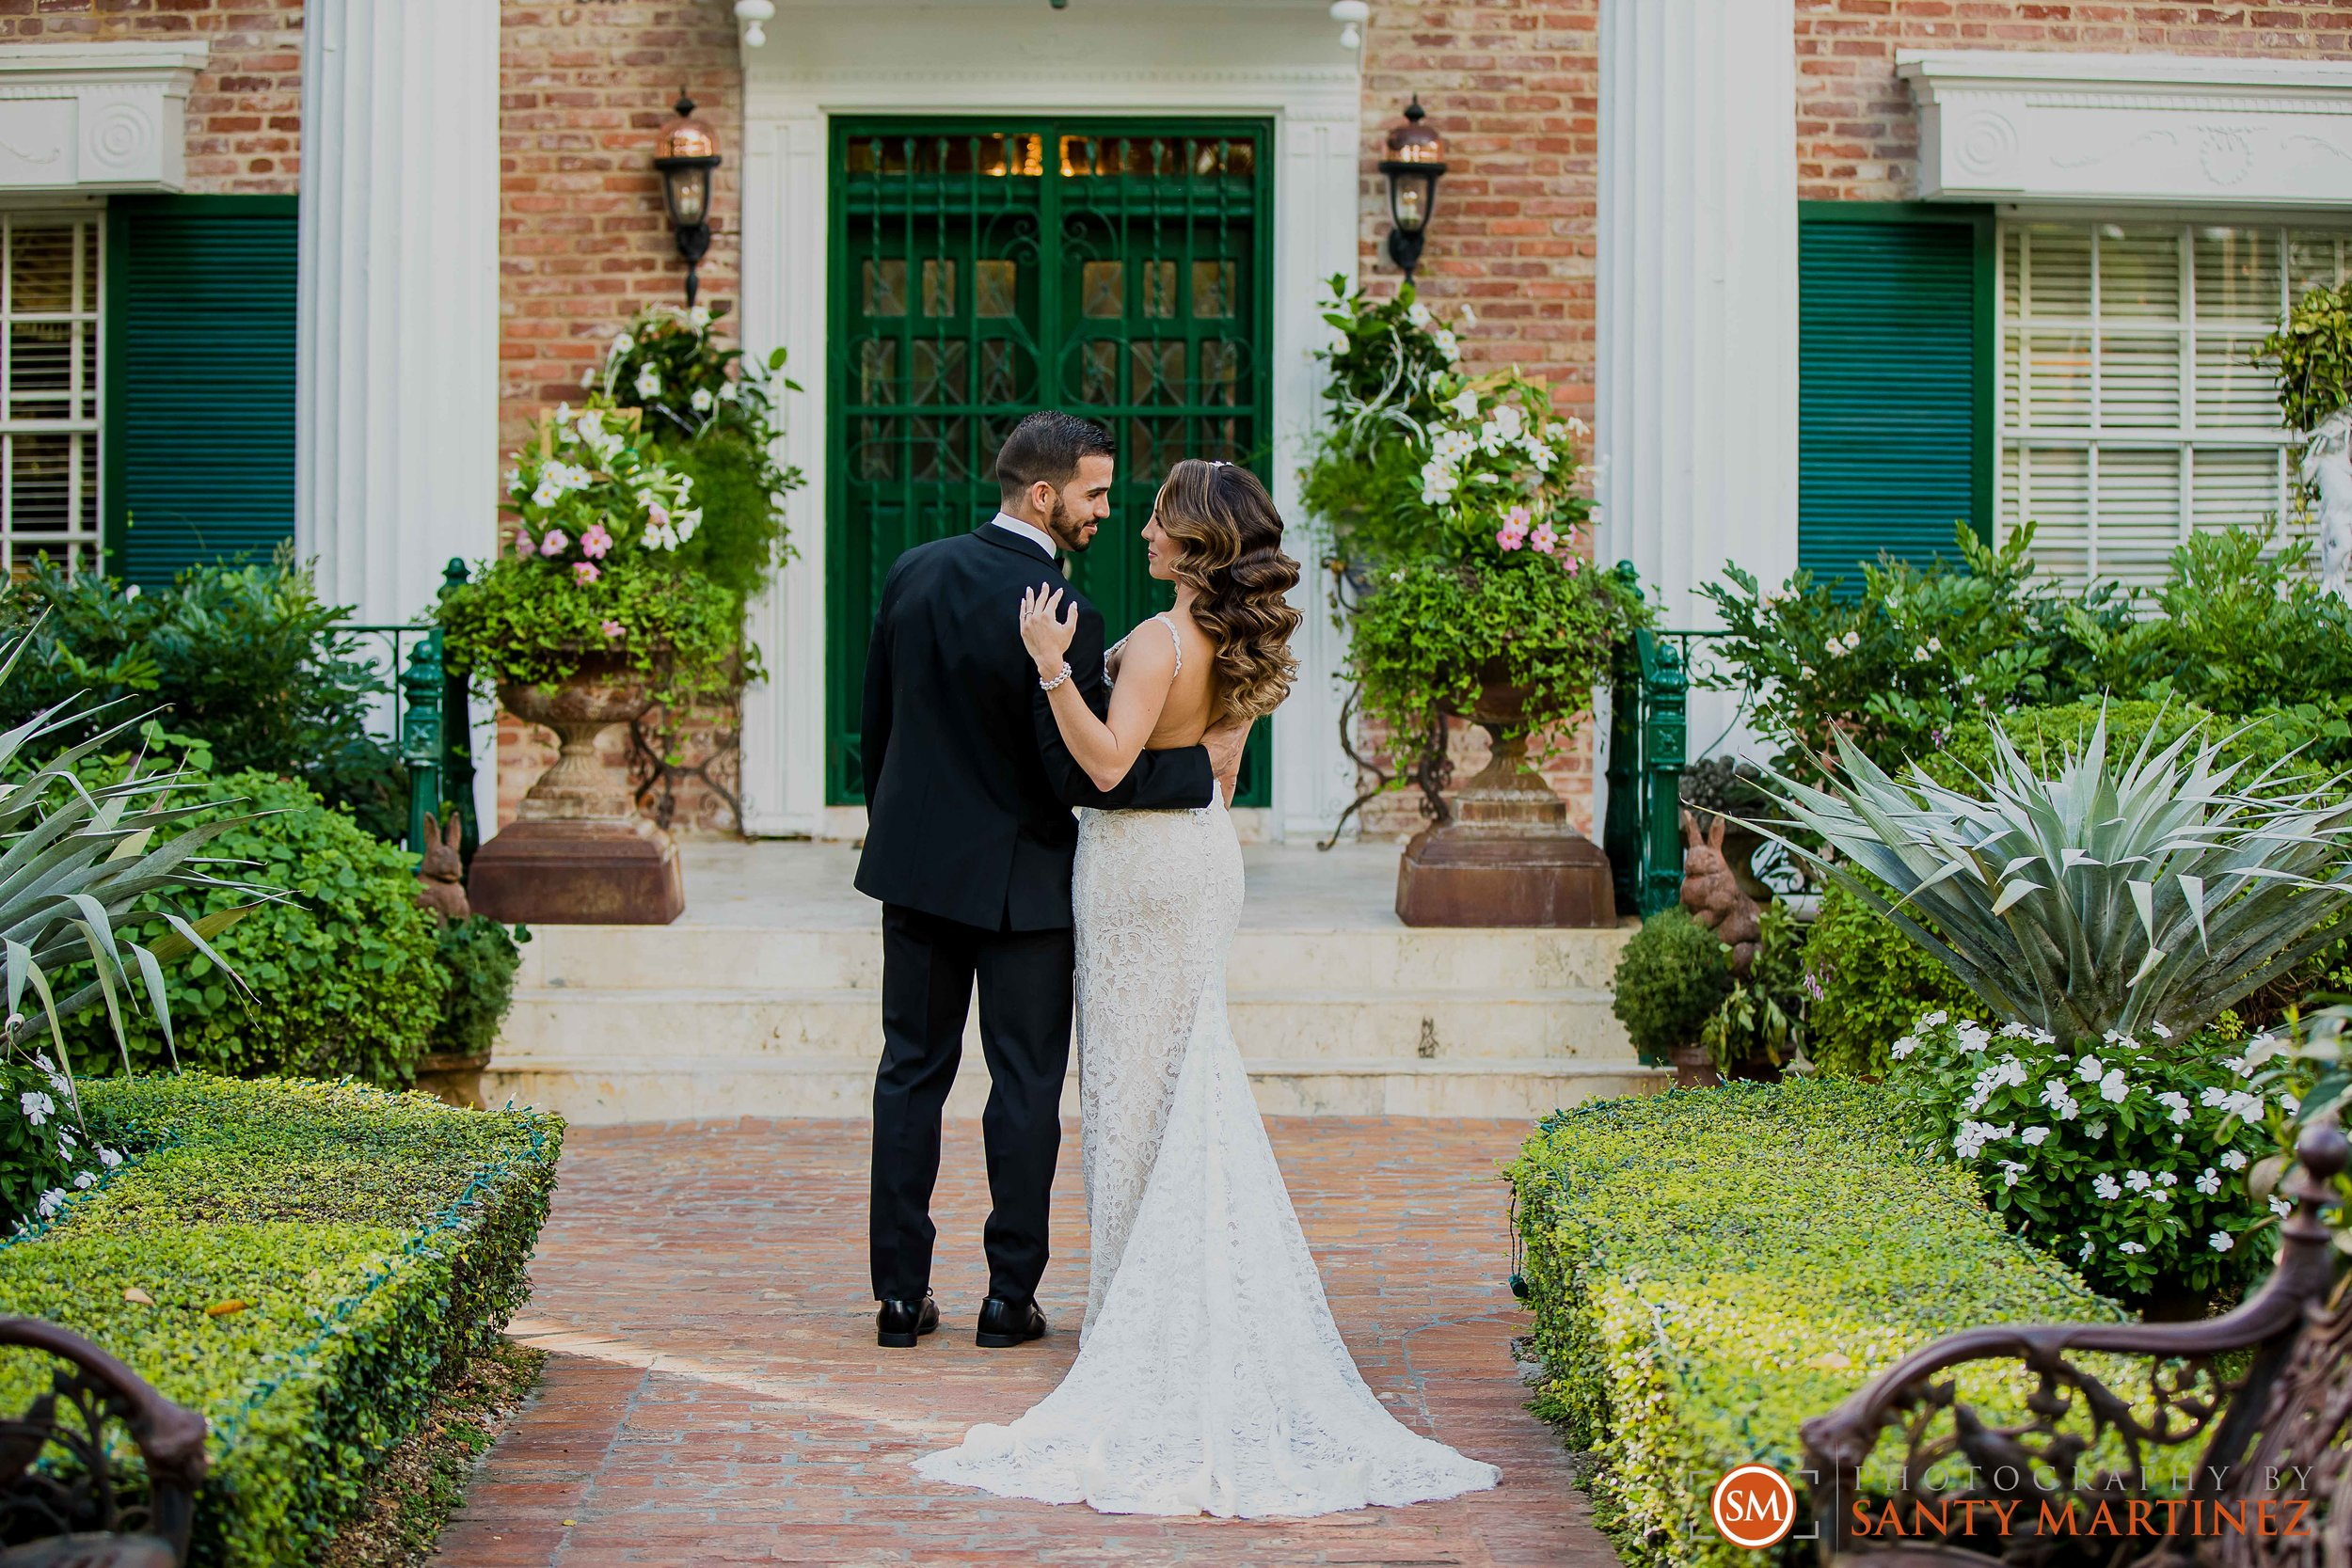 Wedding+at+the+The+Miller+Plantation+-+Santy+Martinez-21.jpg